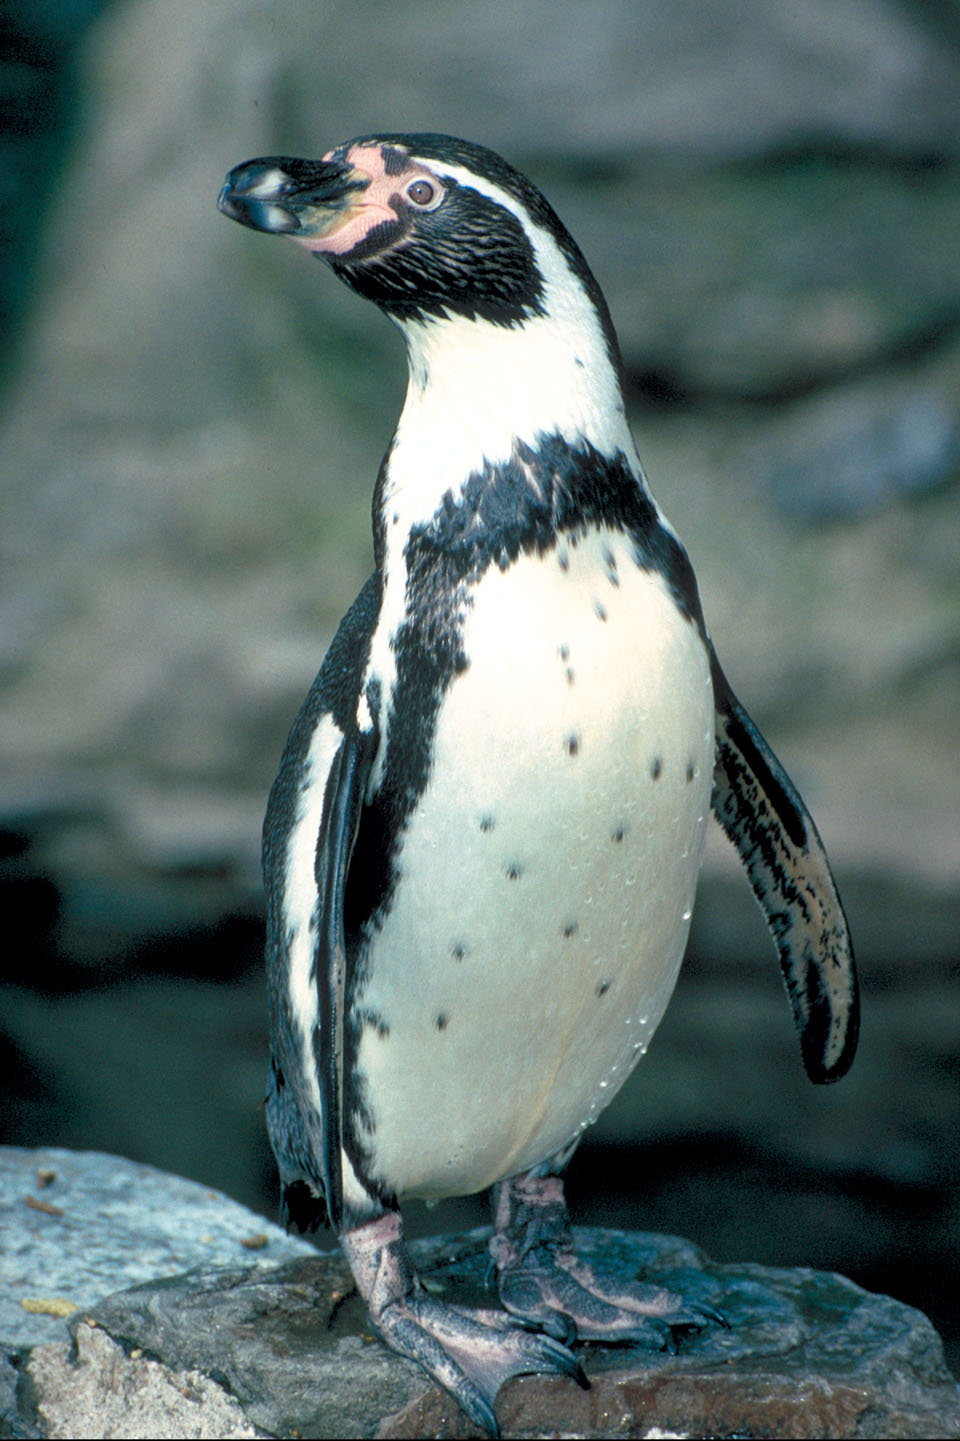 Explore Humboldt Penguin, Penguin Weight, and more!